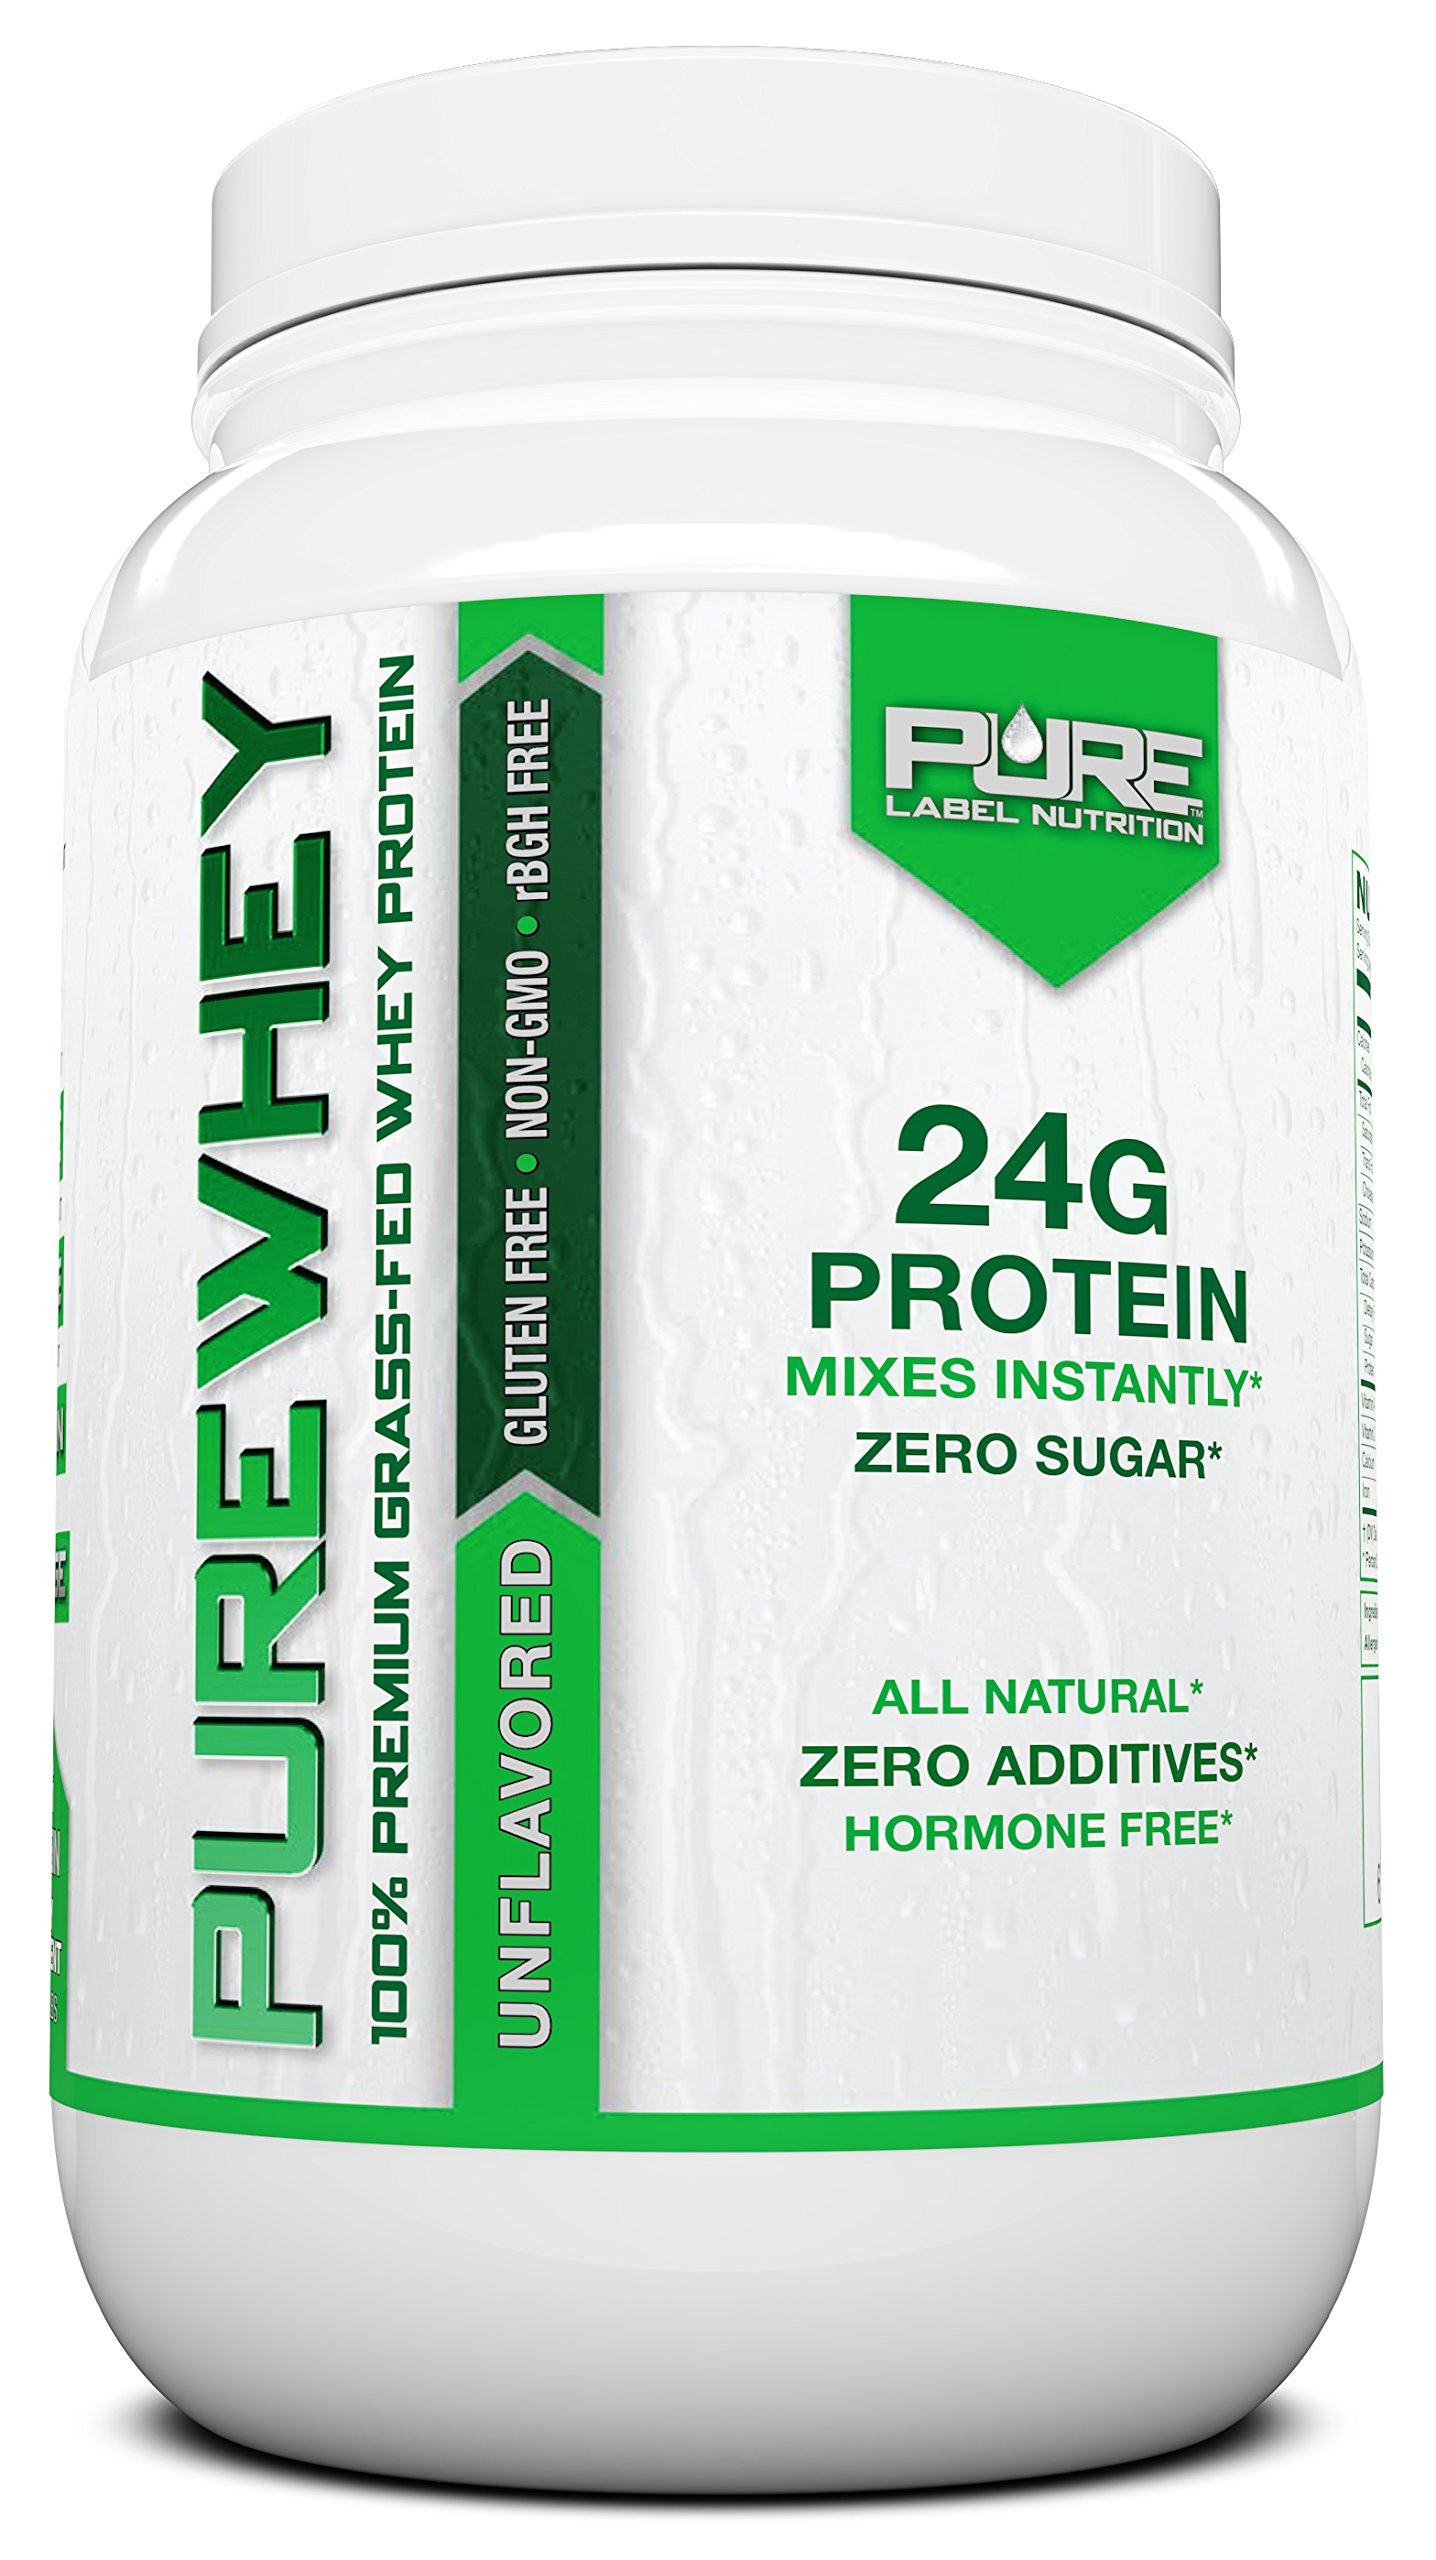 Grass Fed Whey Protein   2lb + Unflavored Whey from Grass Fed California Cows   100% Natural Whey w/ No Sweeteners or Added Sugars   rBHG Free + GMO-Free + Gluten Free + Preservative Free   PURE Whey